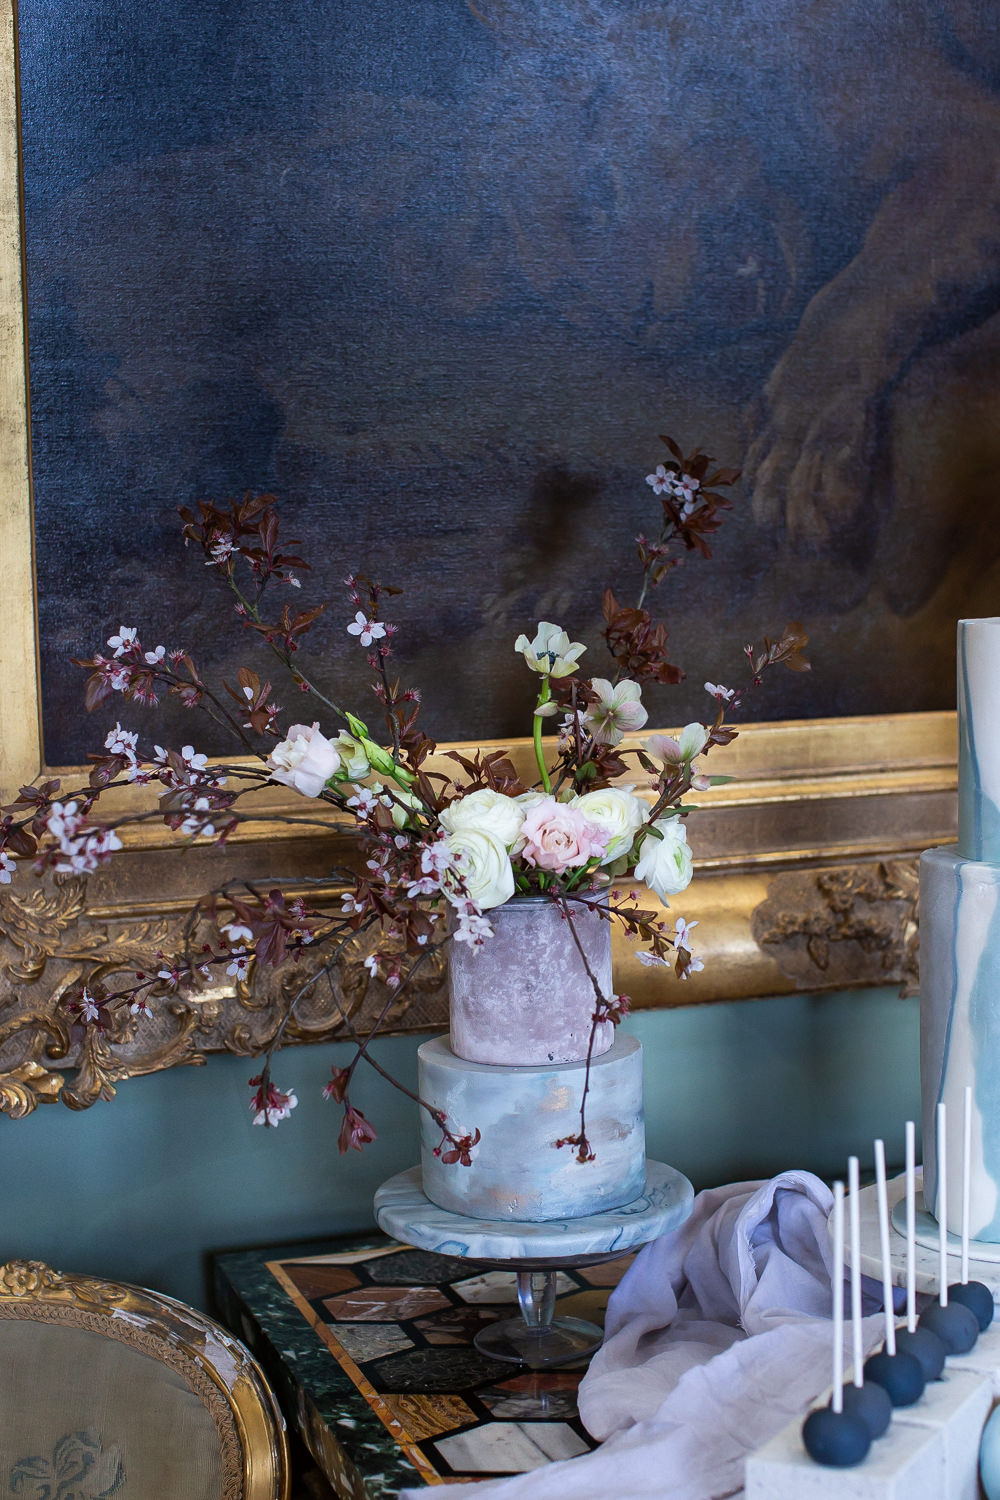 Modern Dance Ballet Inspired Fine Art Editorial Somerley House Cakes Dessert Table Kate Burt Cherry Blossoms Floral Arrangement | Romantic Soft Wedding Ideas Siobhan H Photography